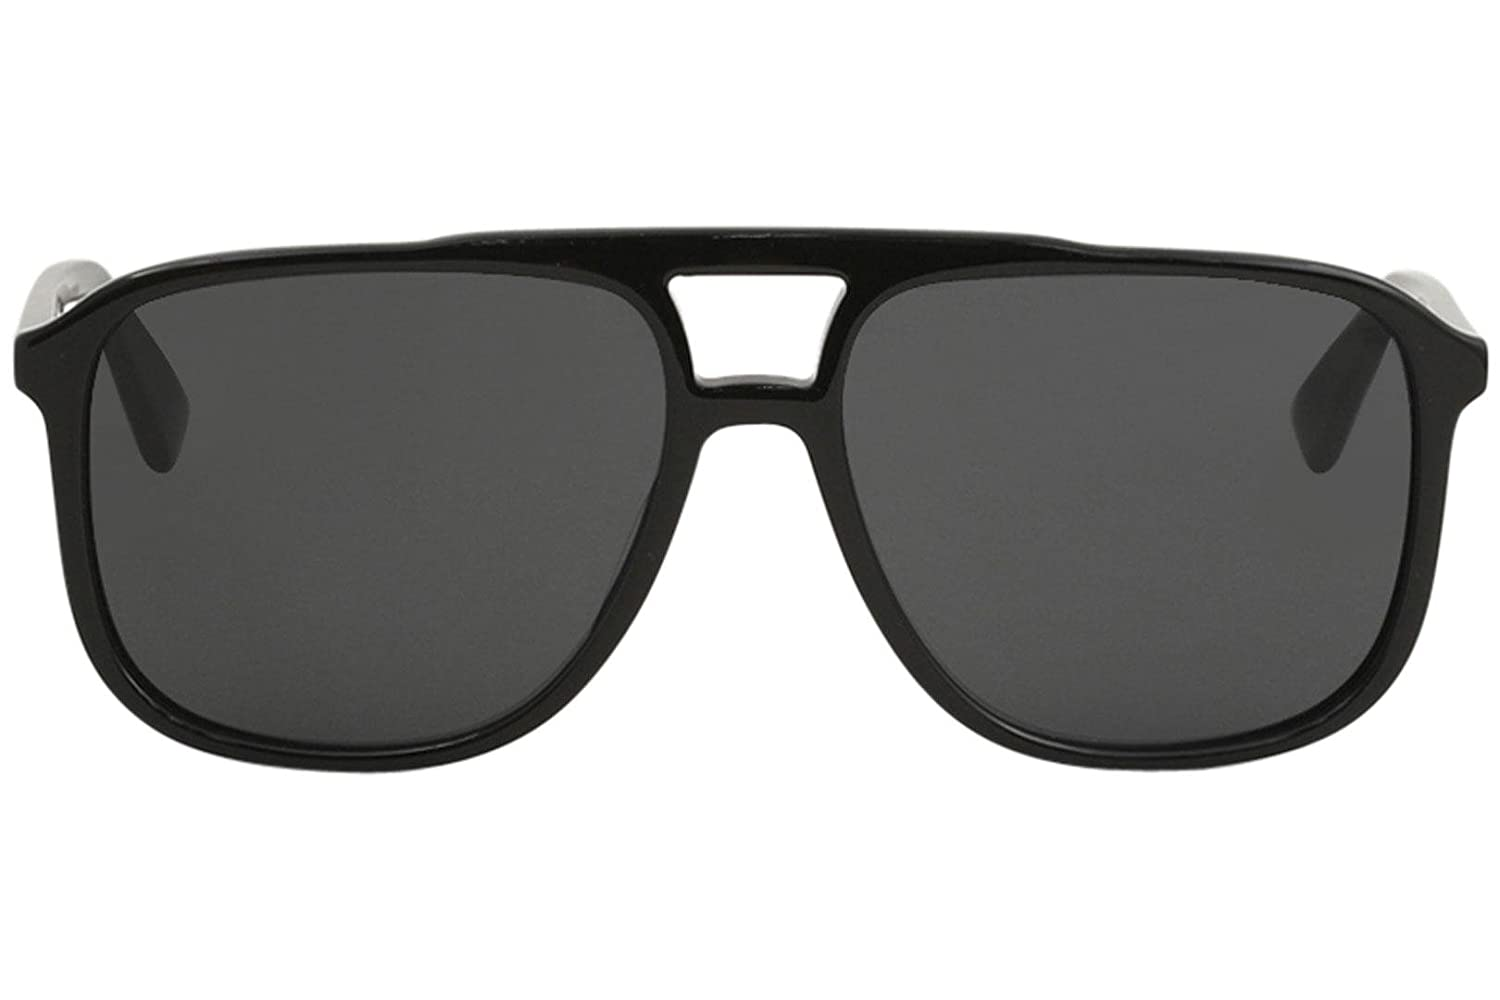 0e17885f1f Amazon.com  Gucci GG0262S 001 Black Plastic Aviator Sunglasses Grey Lens   Clothing